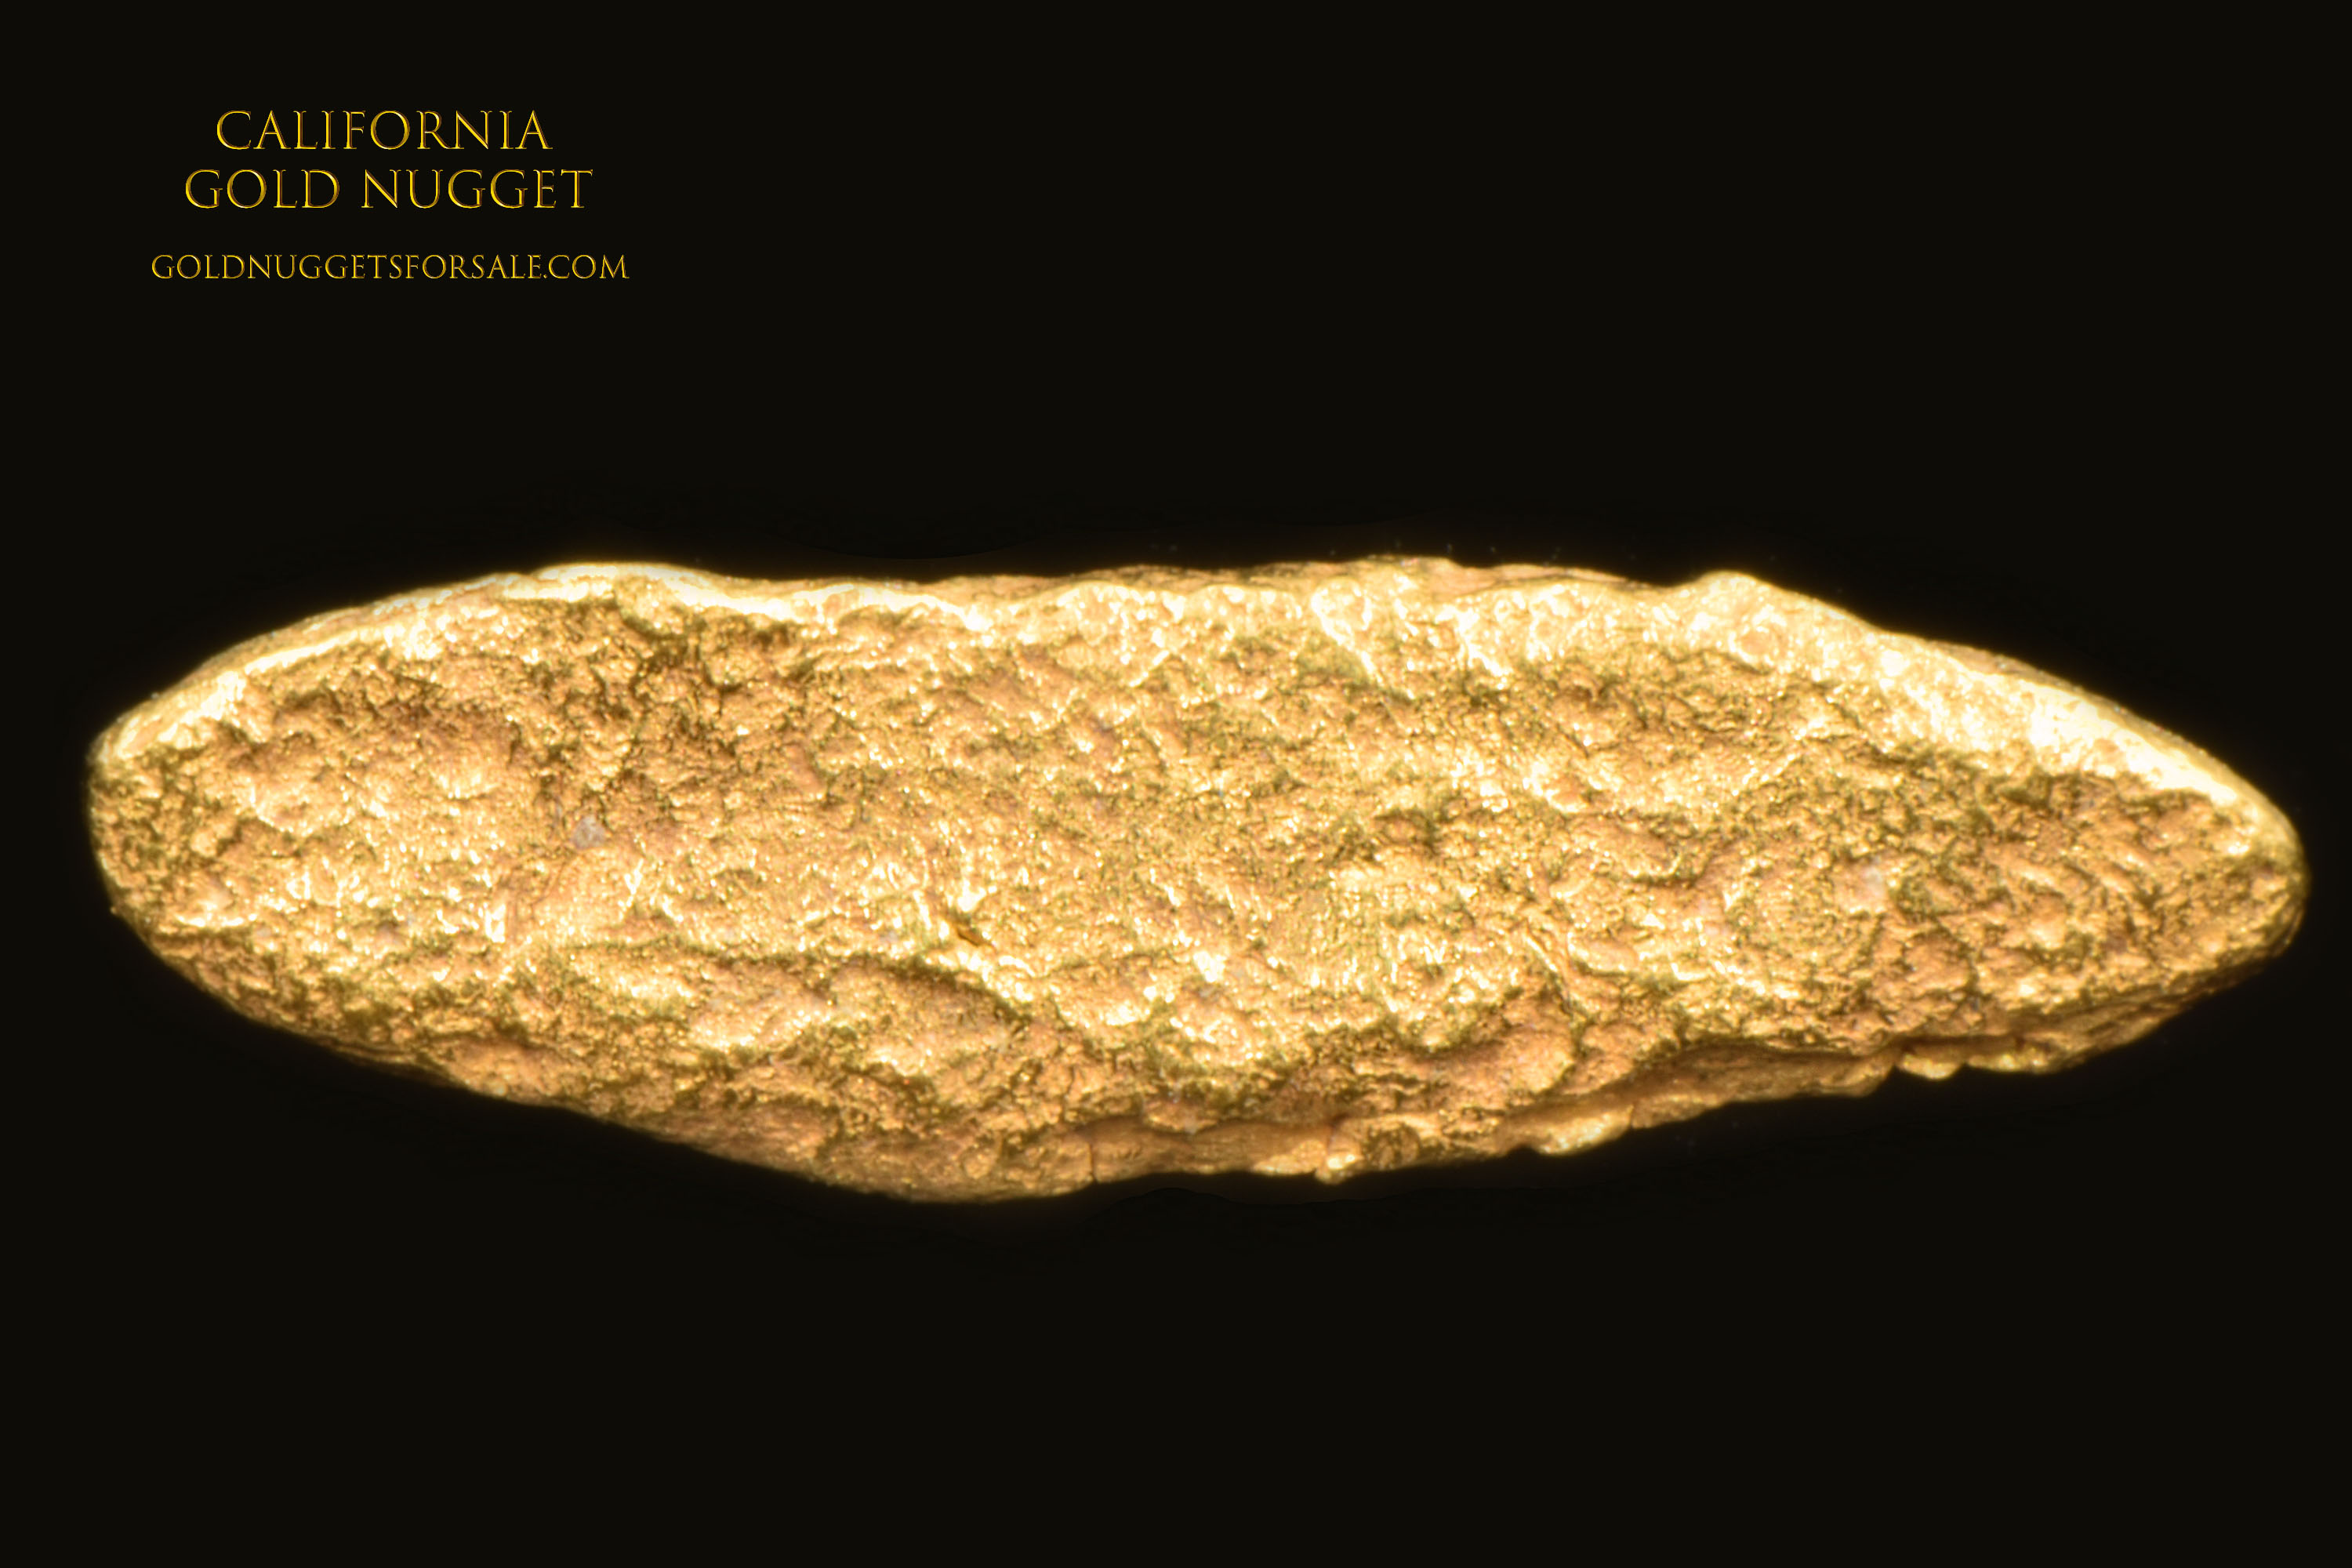 Textured And Uniformly Shaped California Gold Nugget